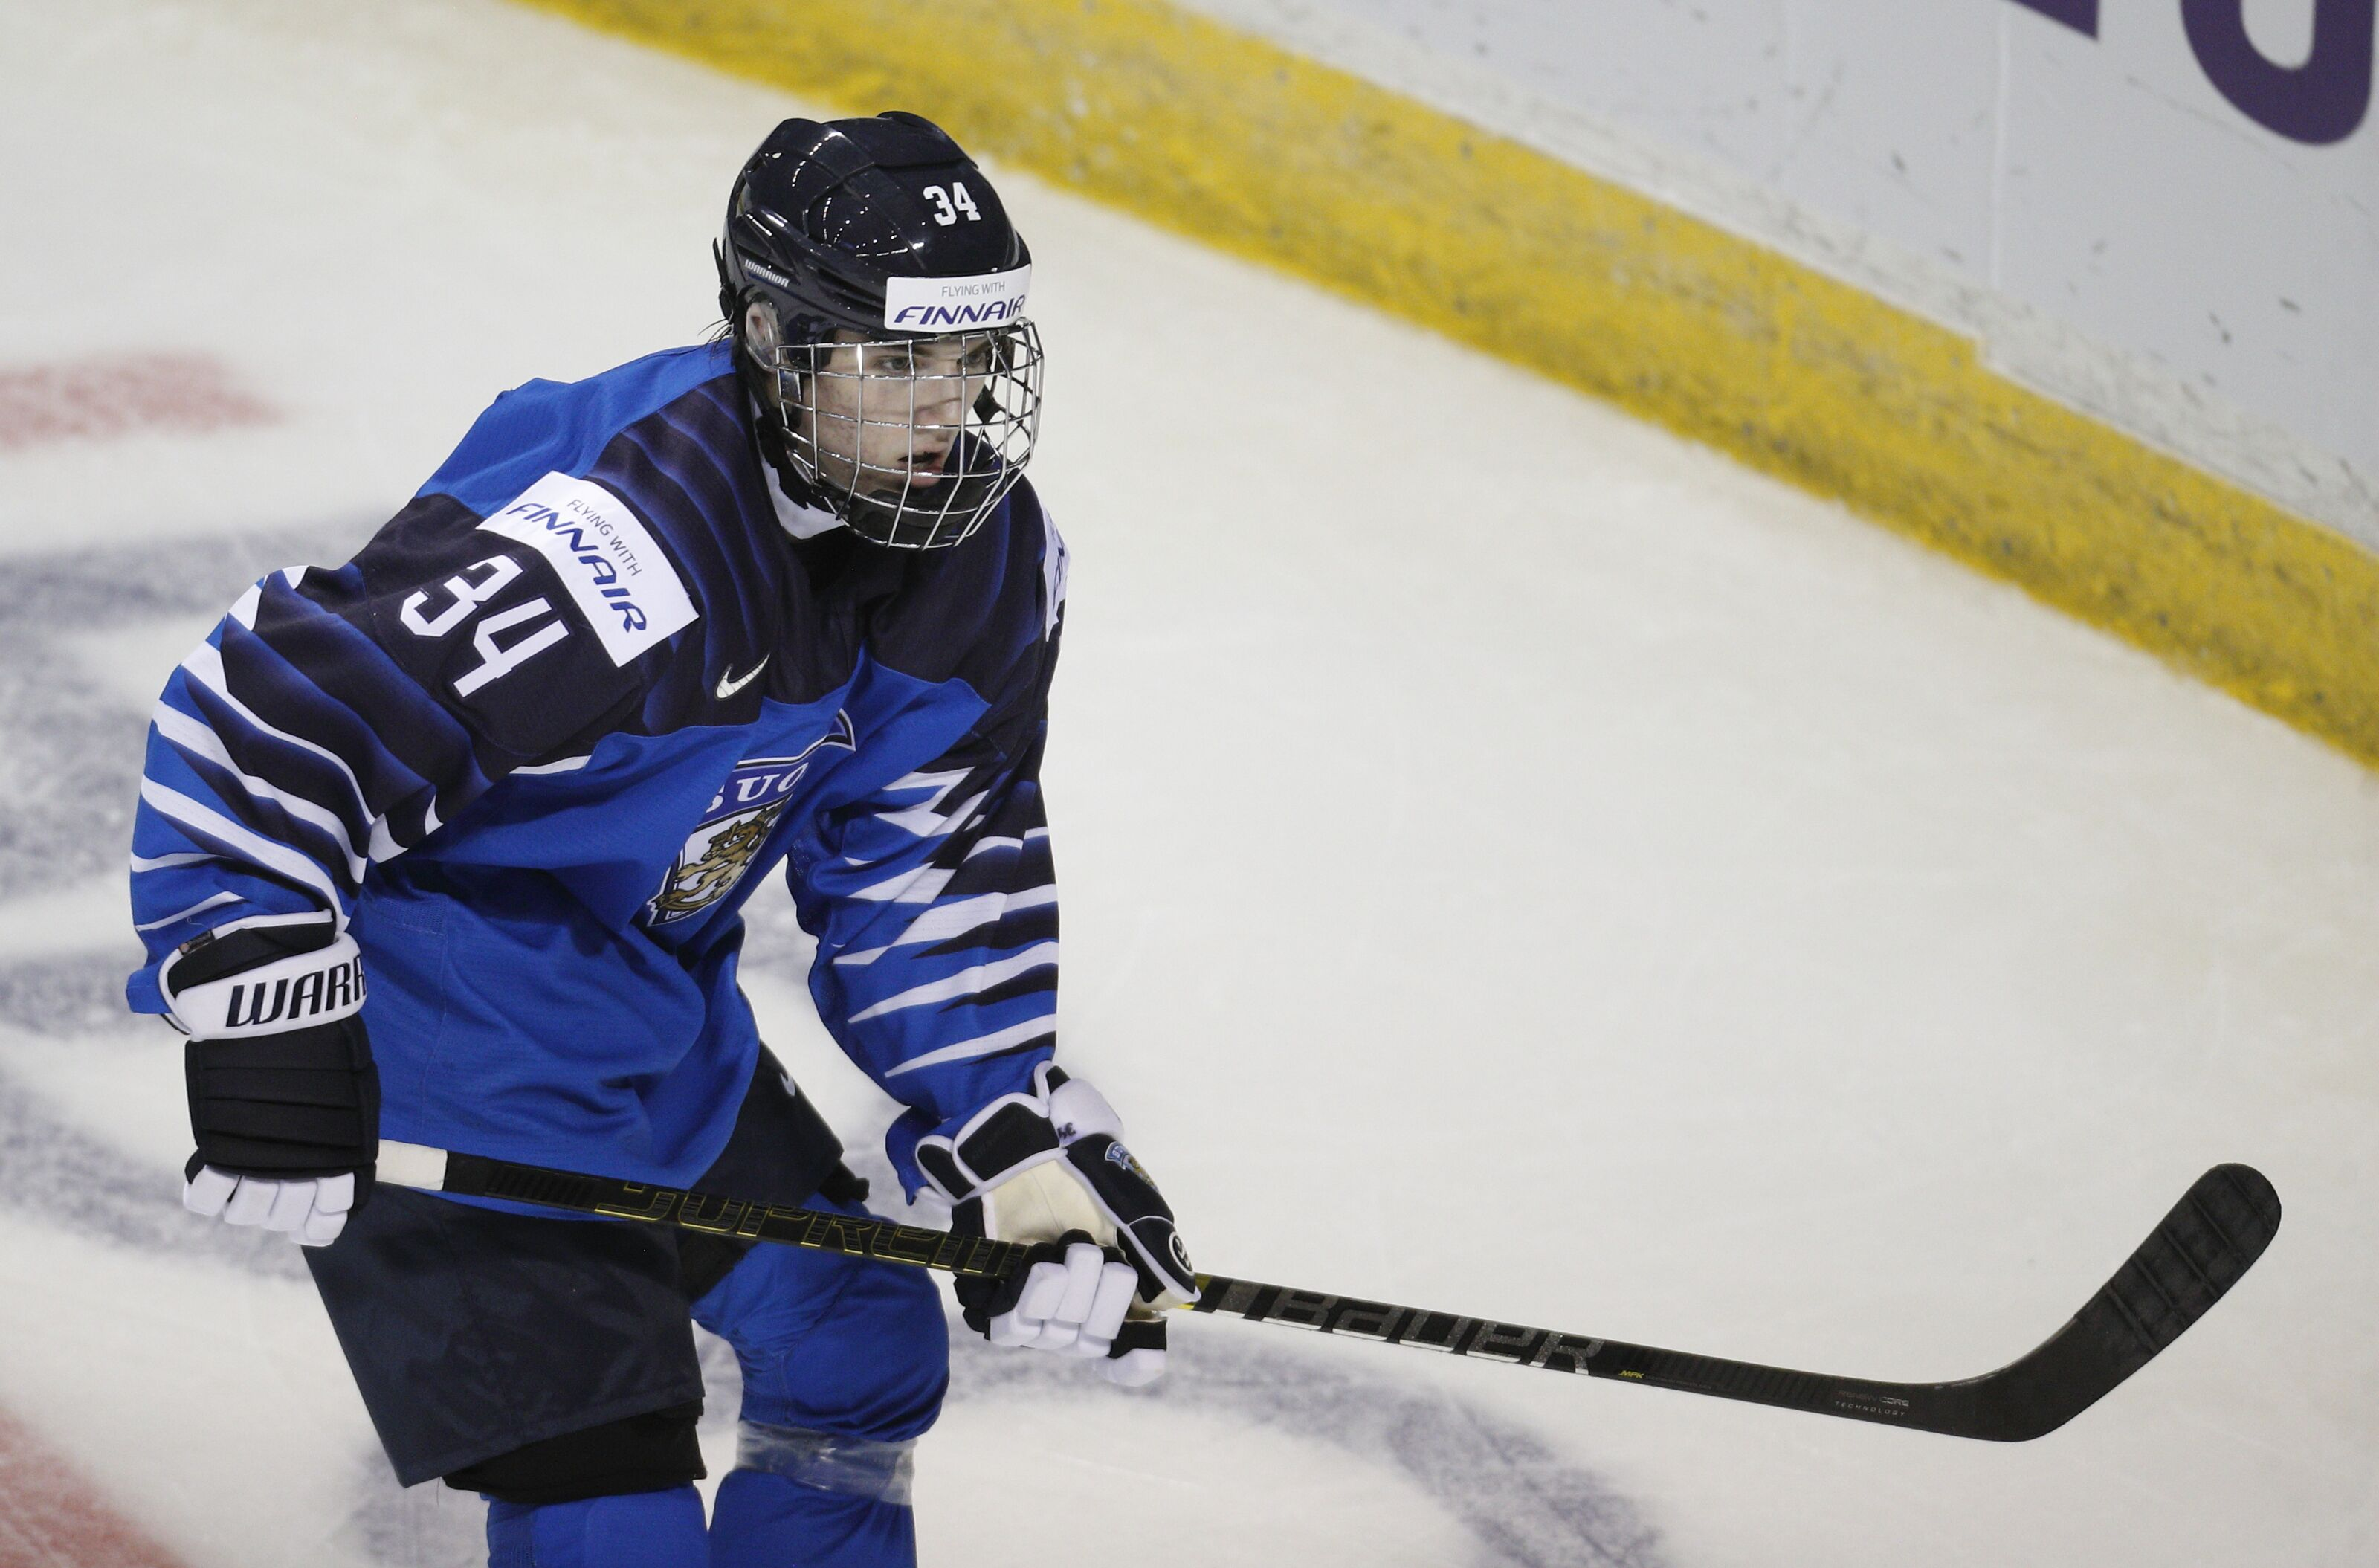 2019 Nhl Draft Prospect Profile Defenceman Ville Heinola